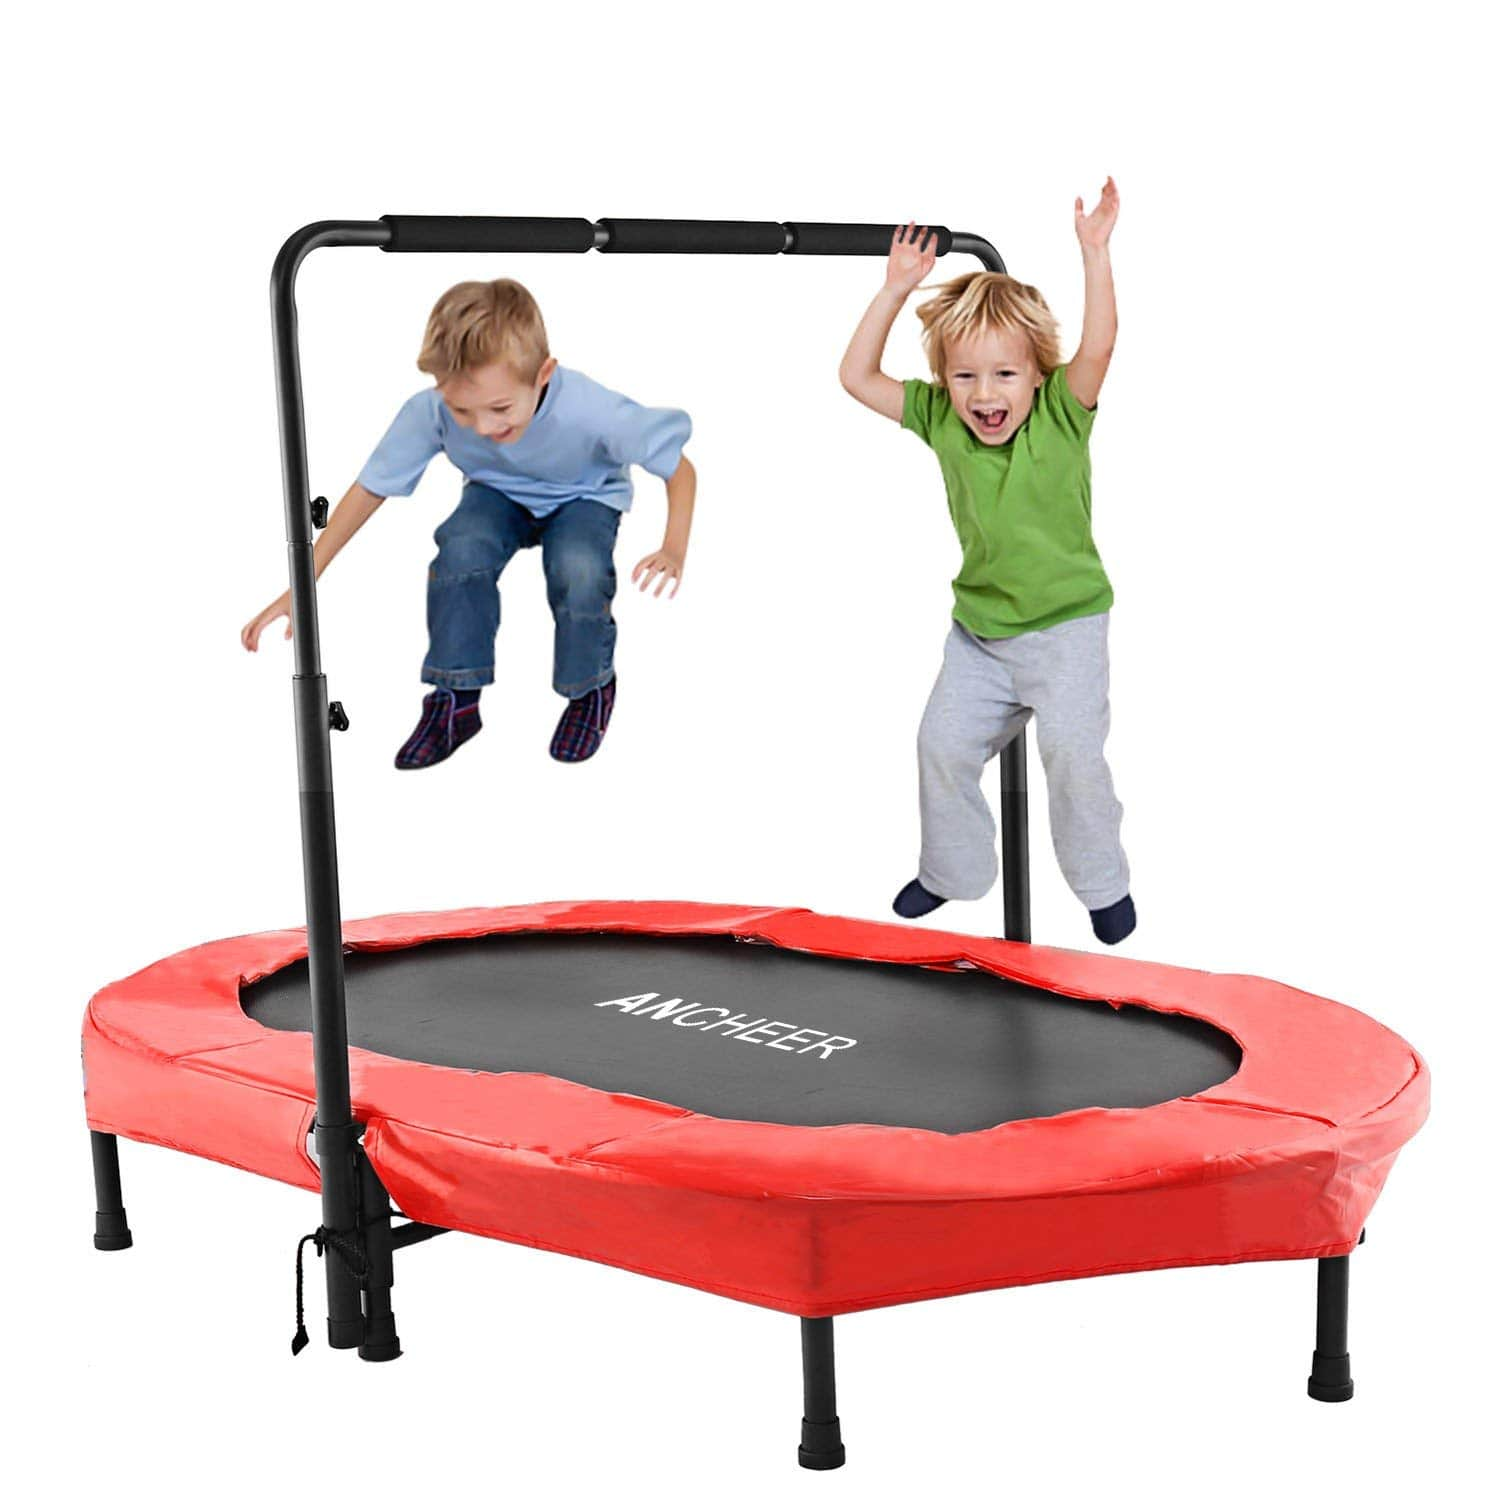 ANCHEER Mini Rebounder Trampoline with Adjustable Handle for Two Kids